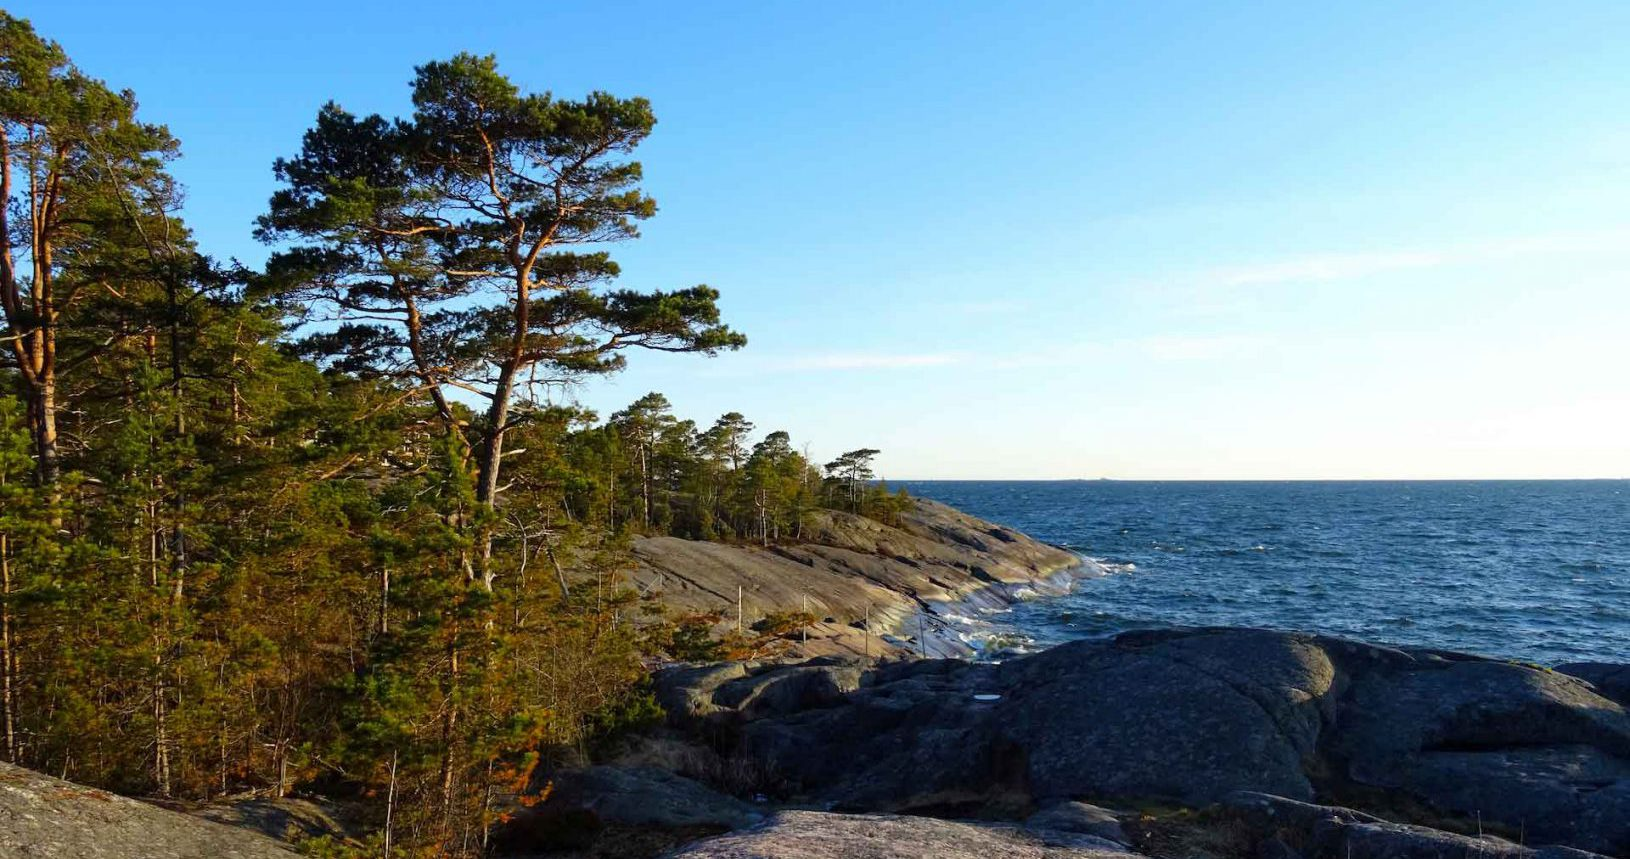 Archipelago rocks in Finland